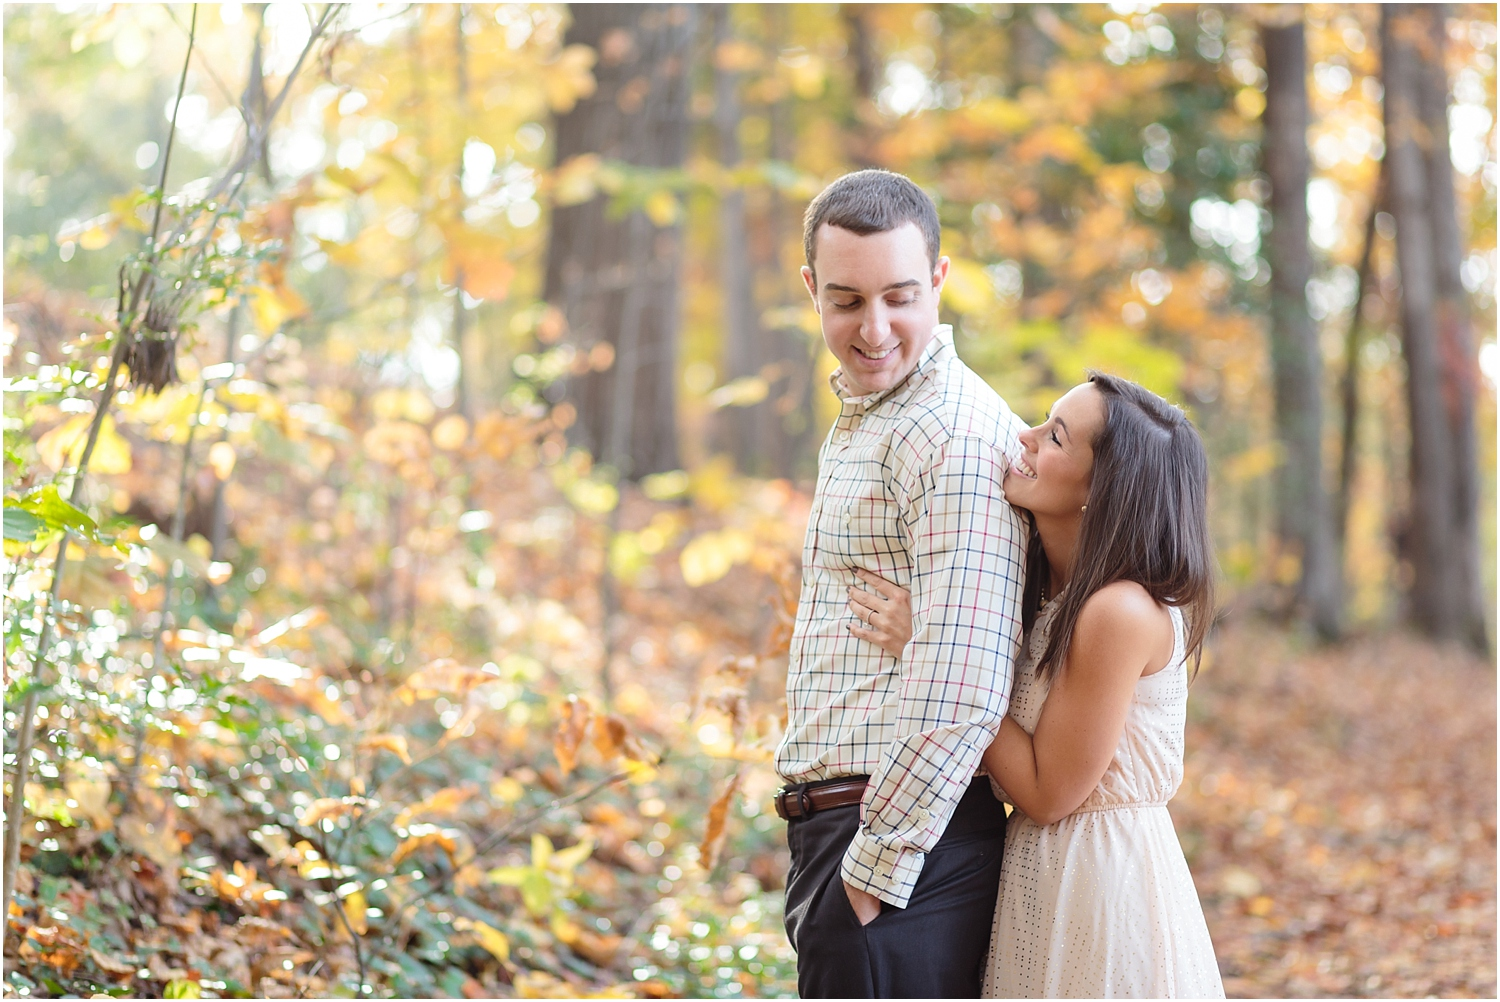 fall-engagement-session-downtown-greenville-photography-7_blog.jpg